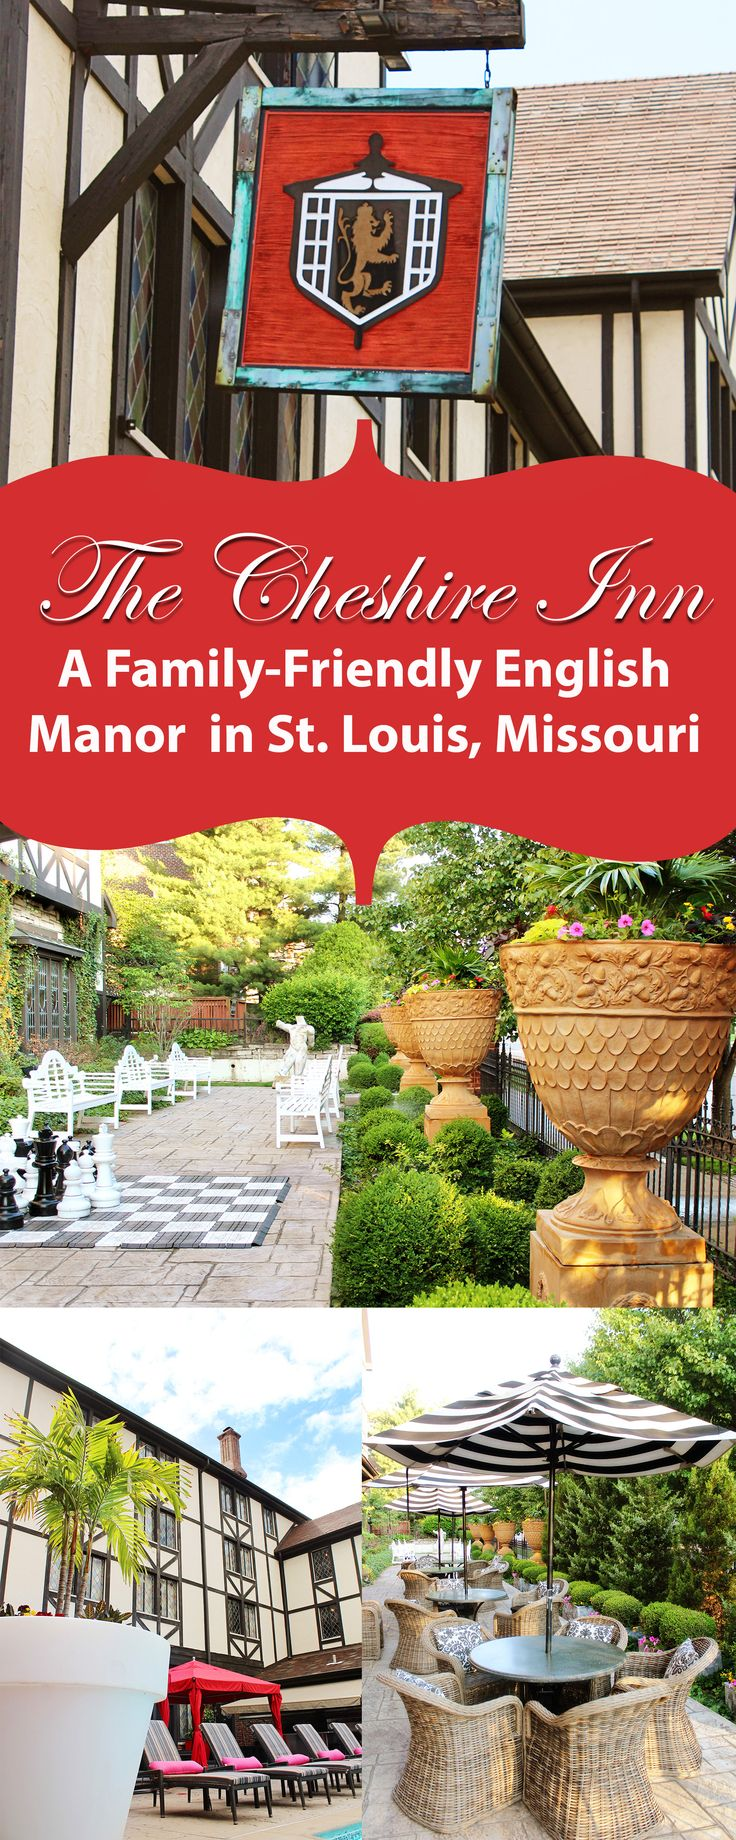 The Cheshire Inn - A review of this family friendly boutique hotel in St. Louis, Missouri